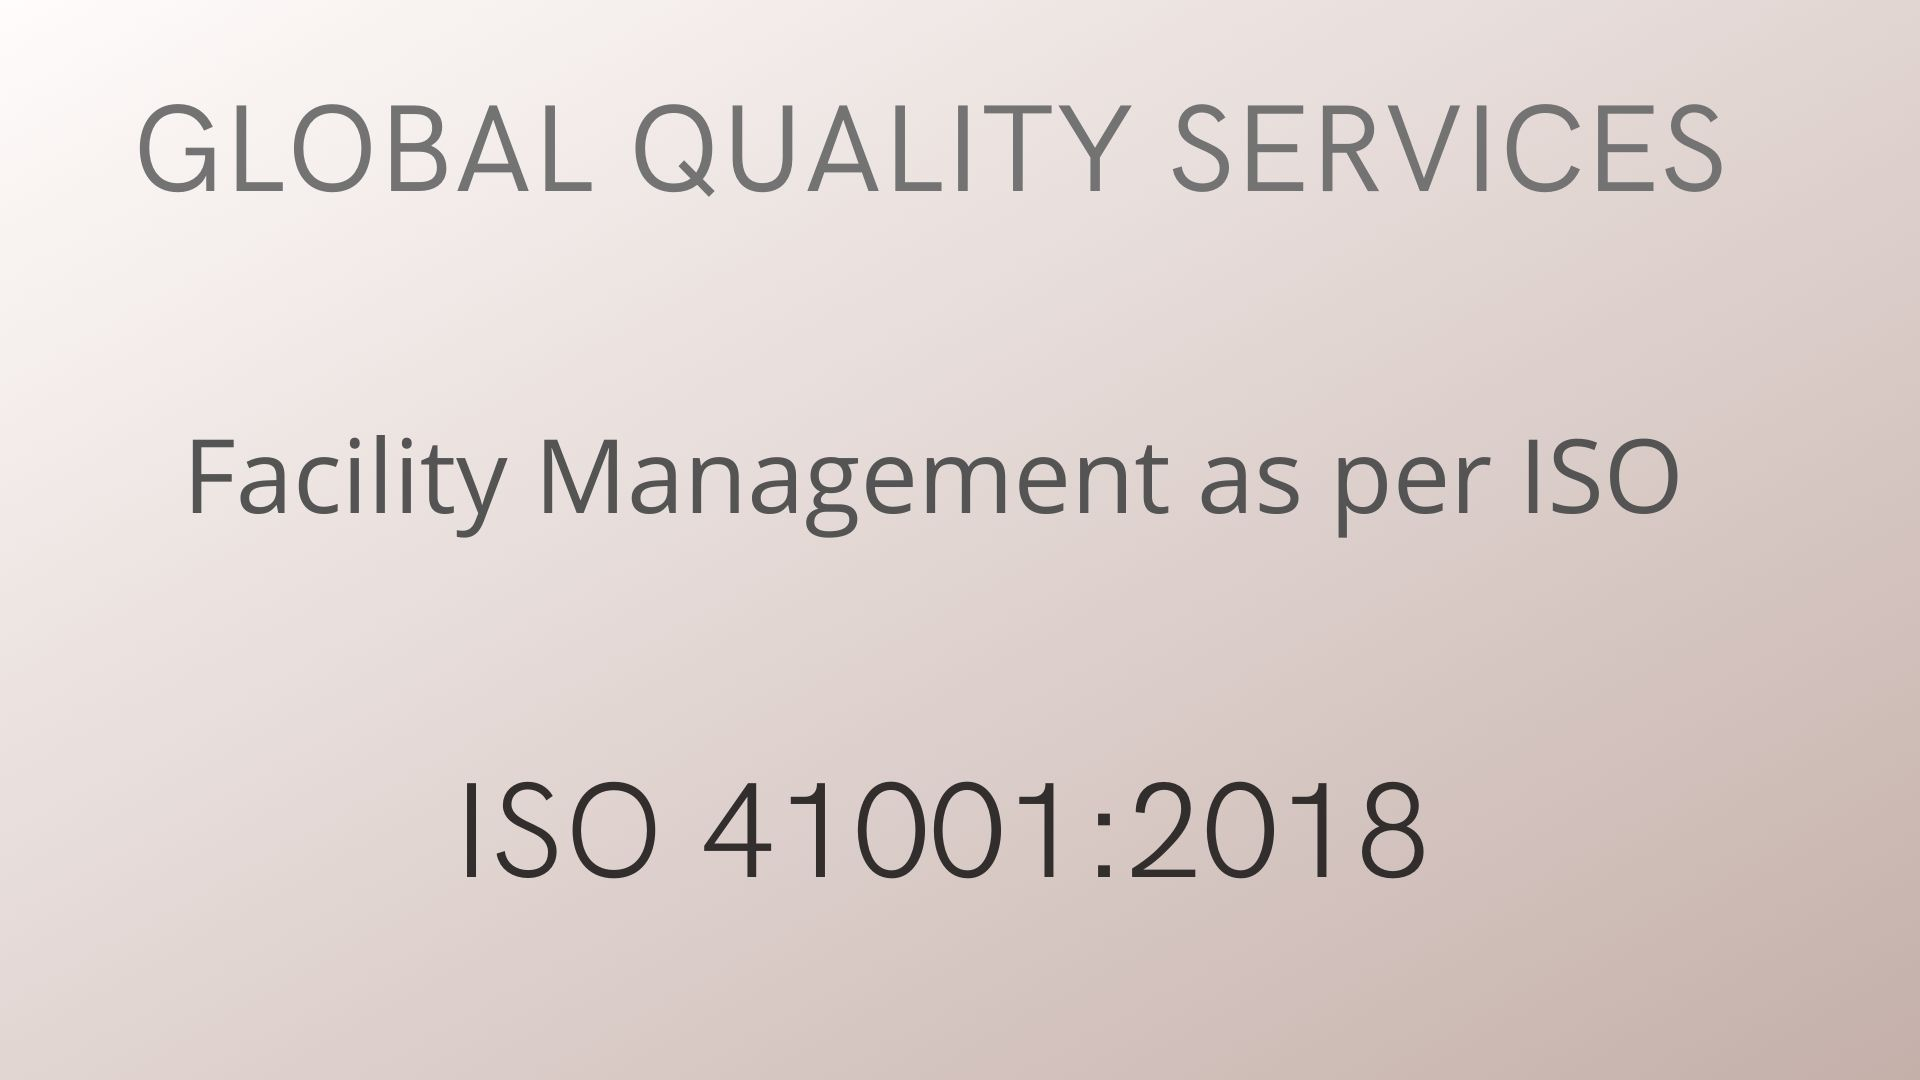 Requirements specified in ISO 41001:2018 –